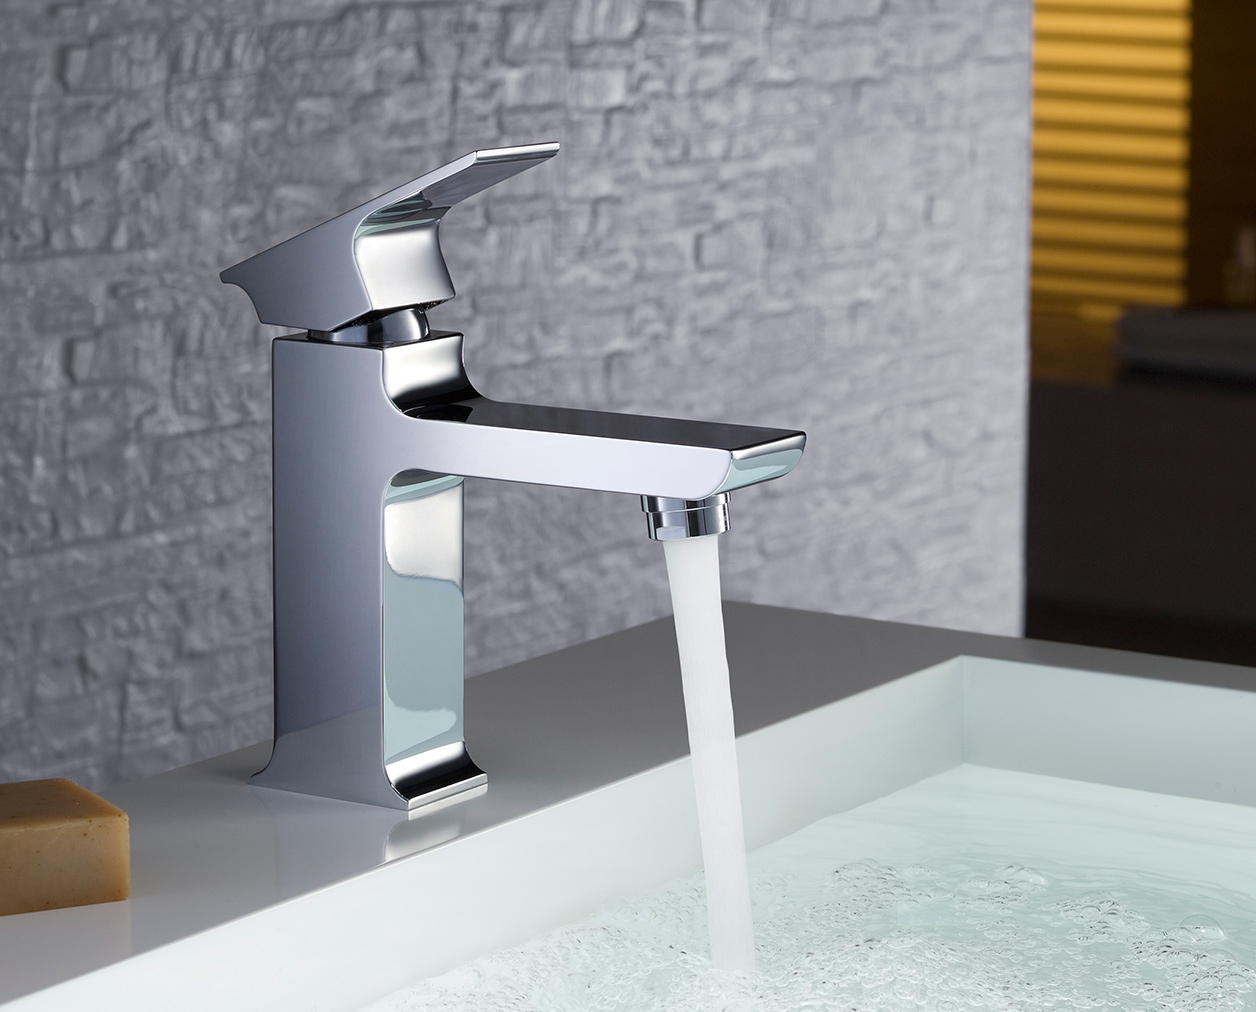 Bathroom Sinks Miami modern bathroom vanities, cabinets & faucets | bathroom place miami